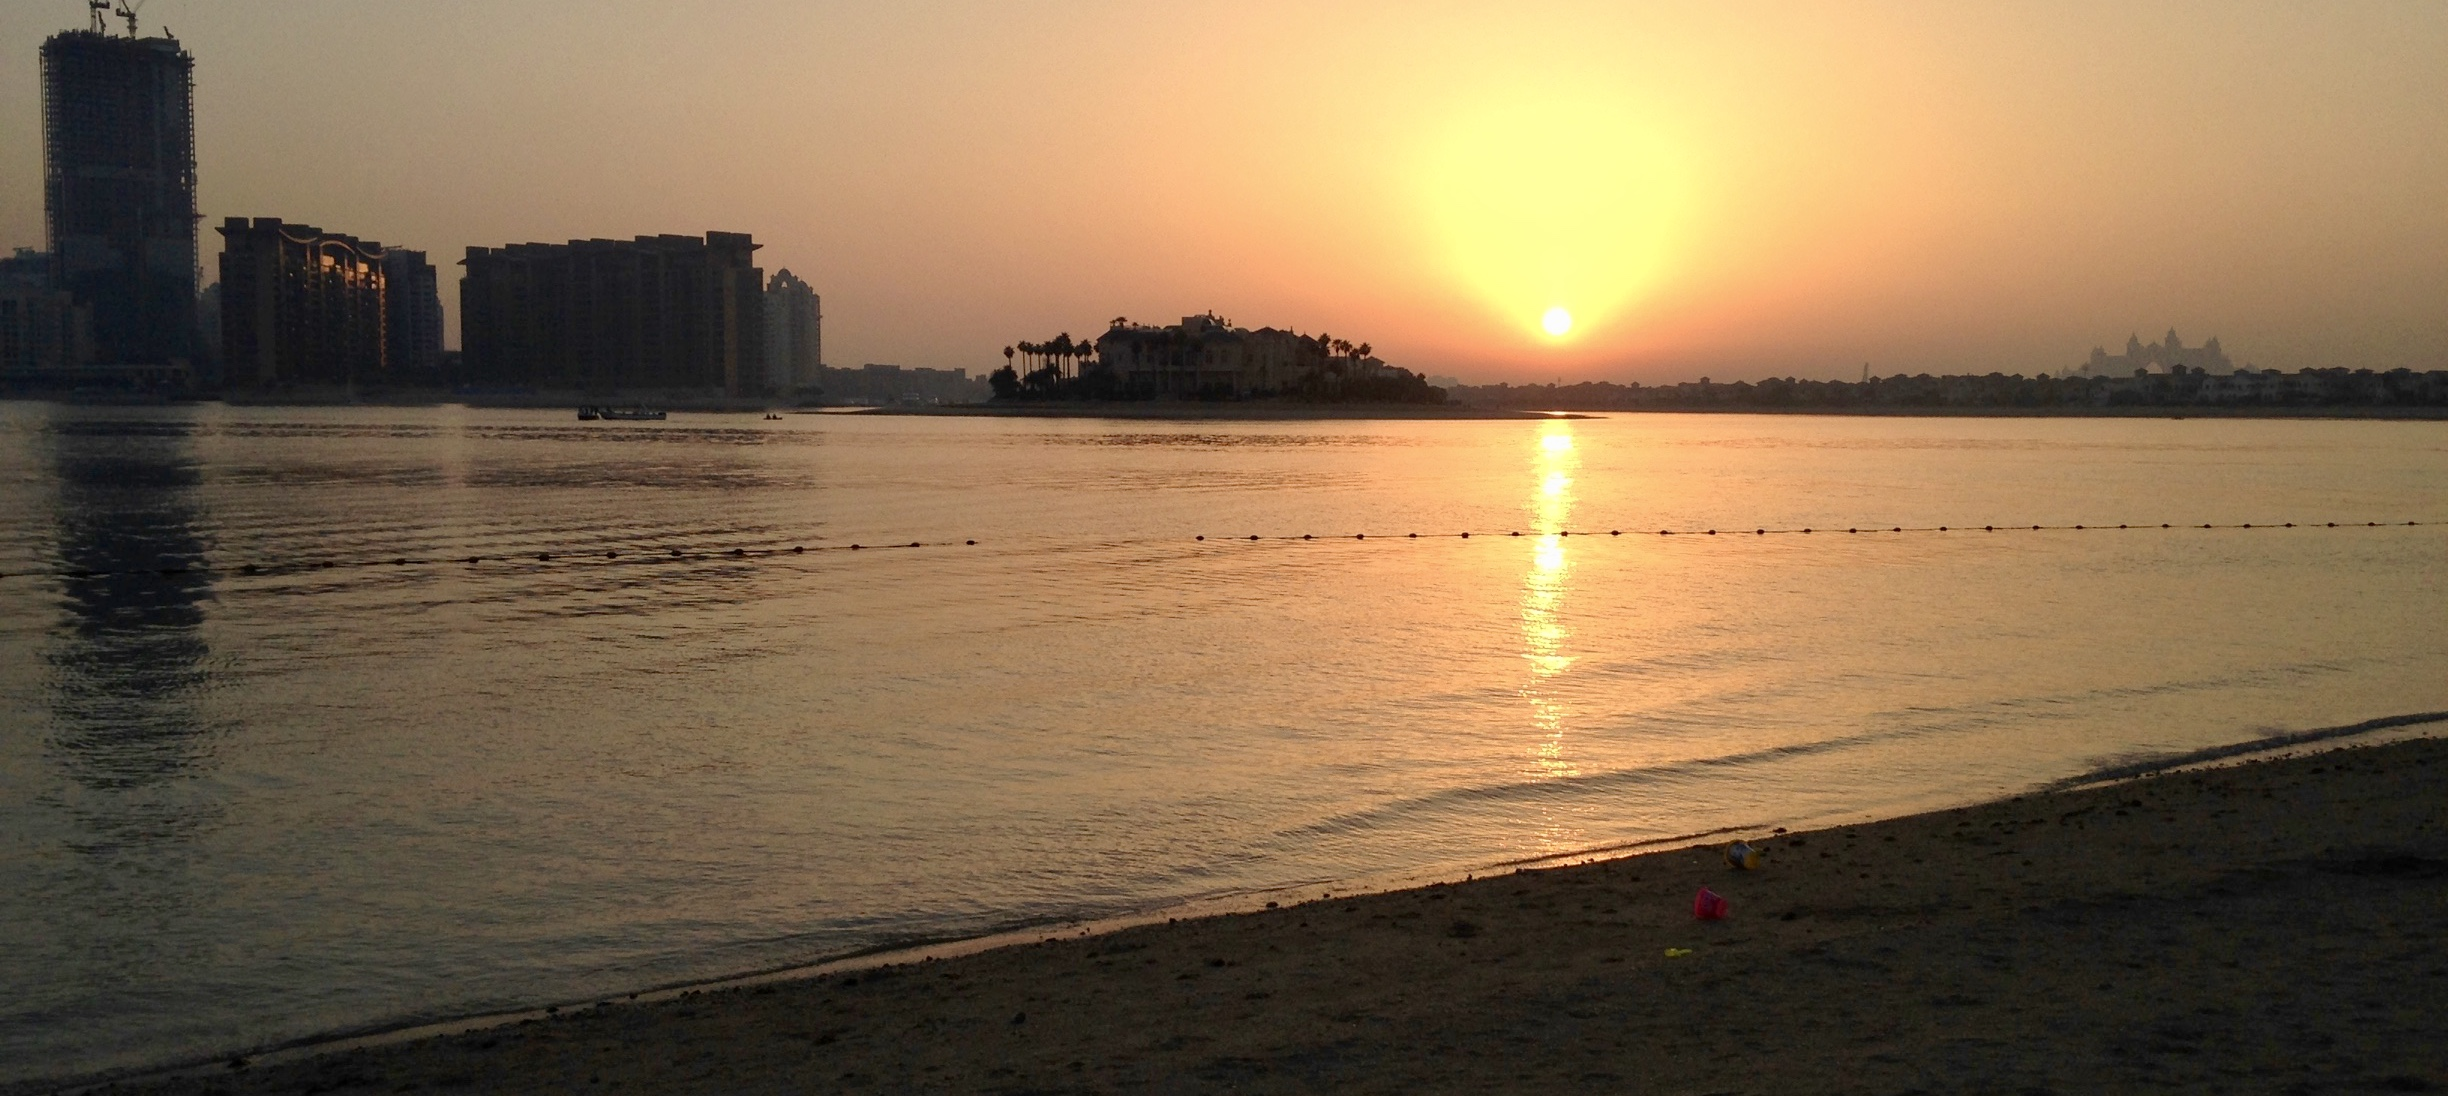 Sunset on the private beach at Rixos The Palm